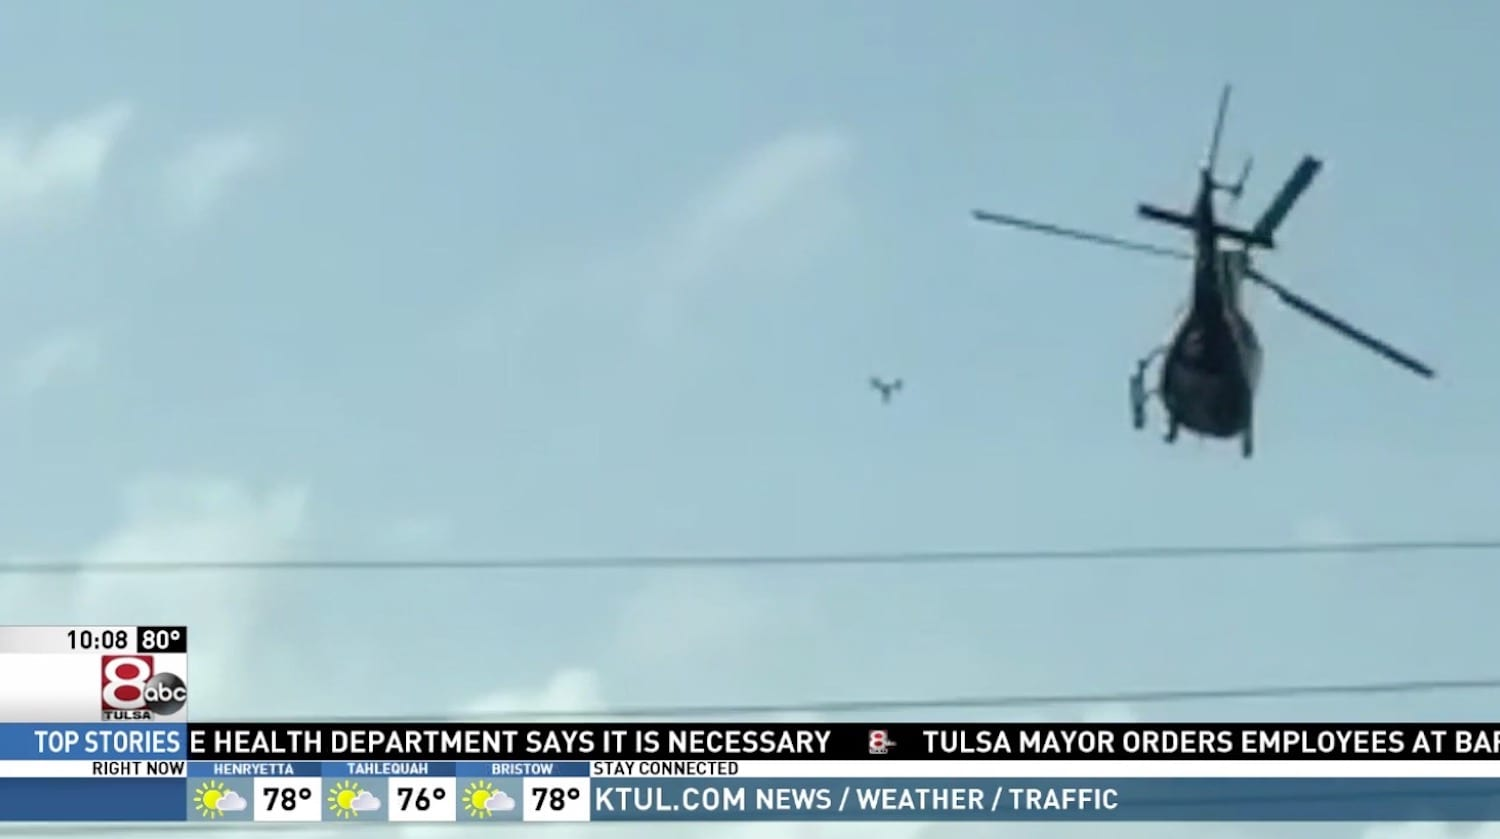 Near-collision between drone and police helicopter in Tulsa, OK